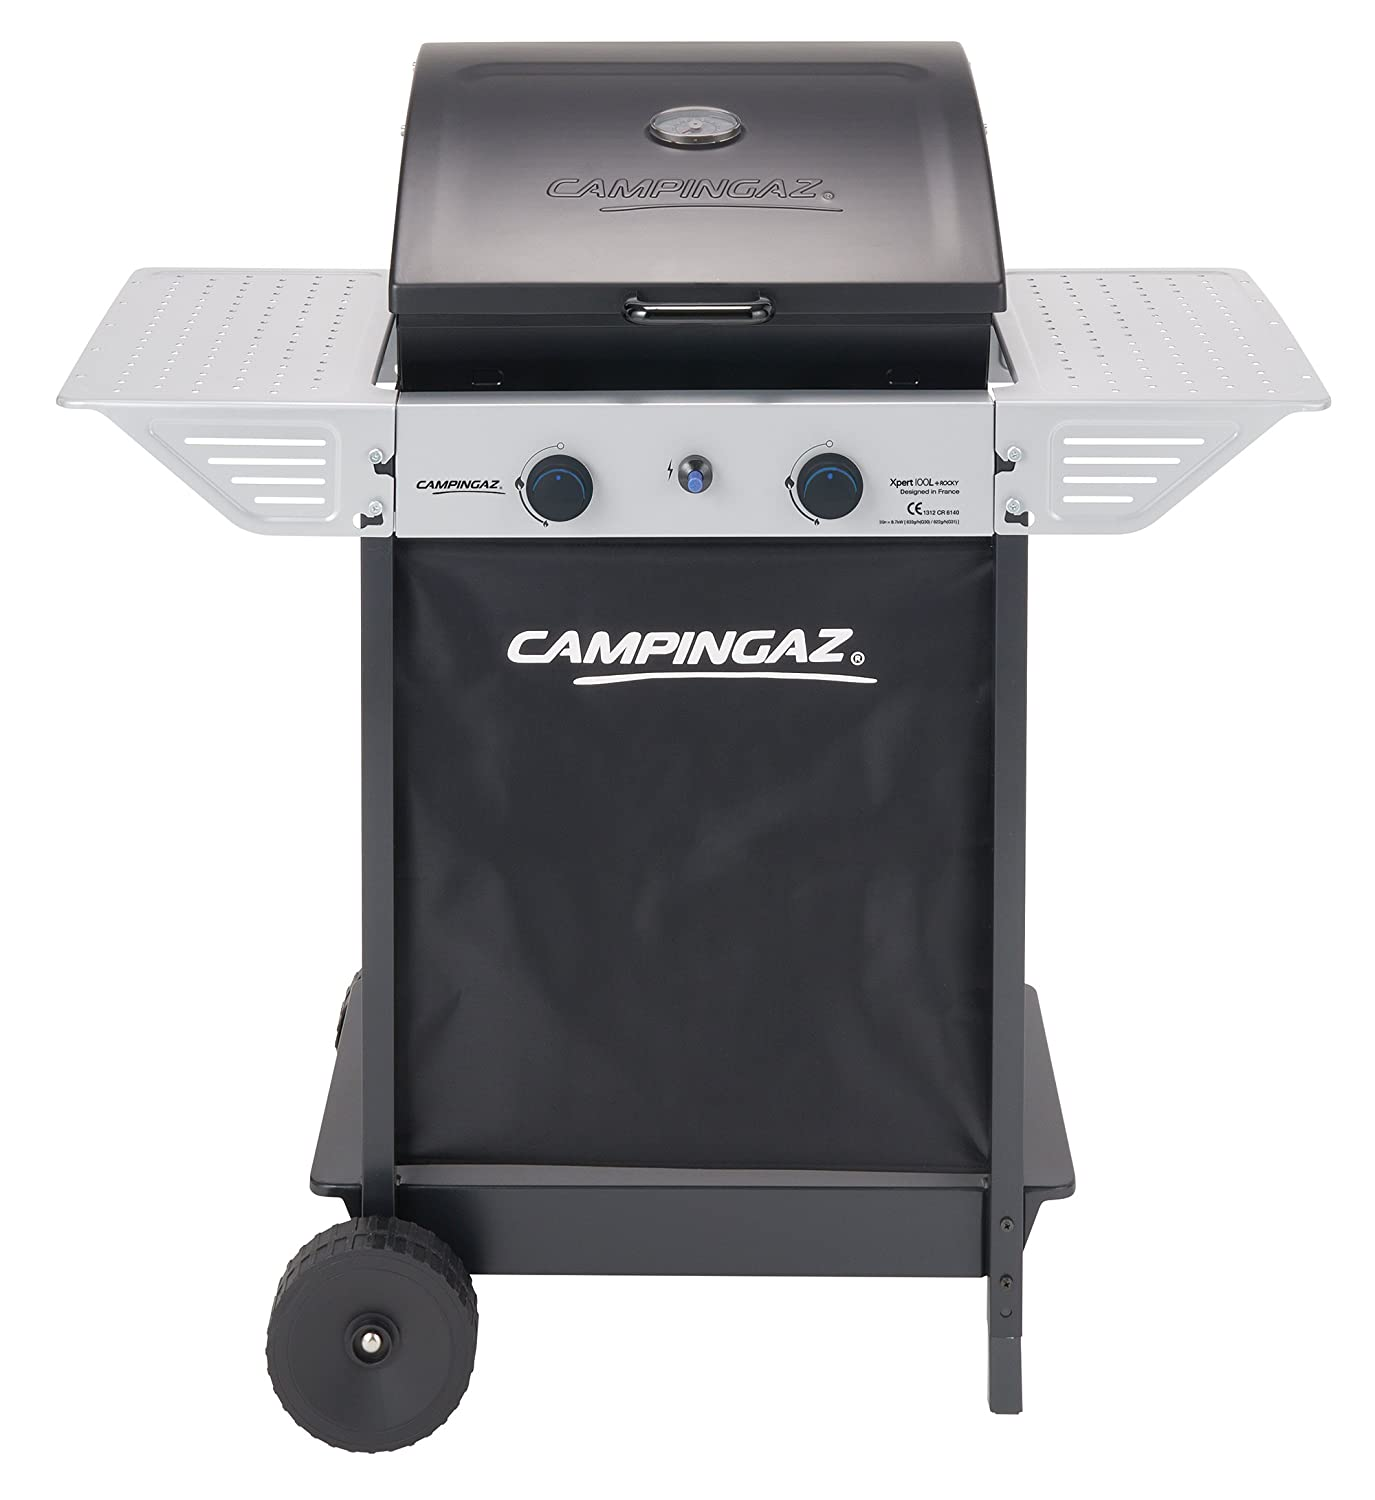 Campingaz 2 Series Classic Xpert 100 L Plus Rocky Barbecue Trolley natural gas 7100 W Black, Silver 3000004826